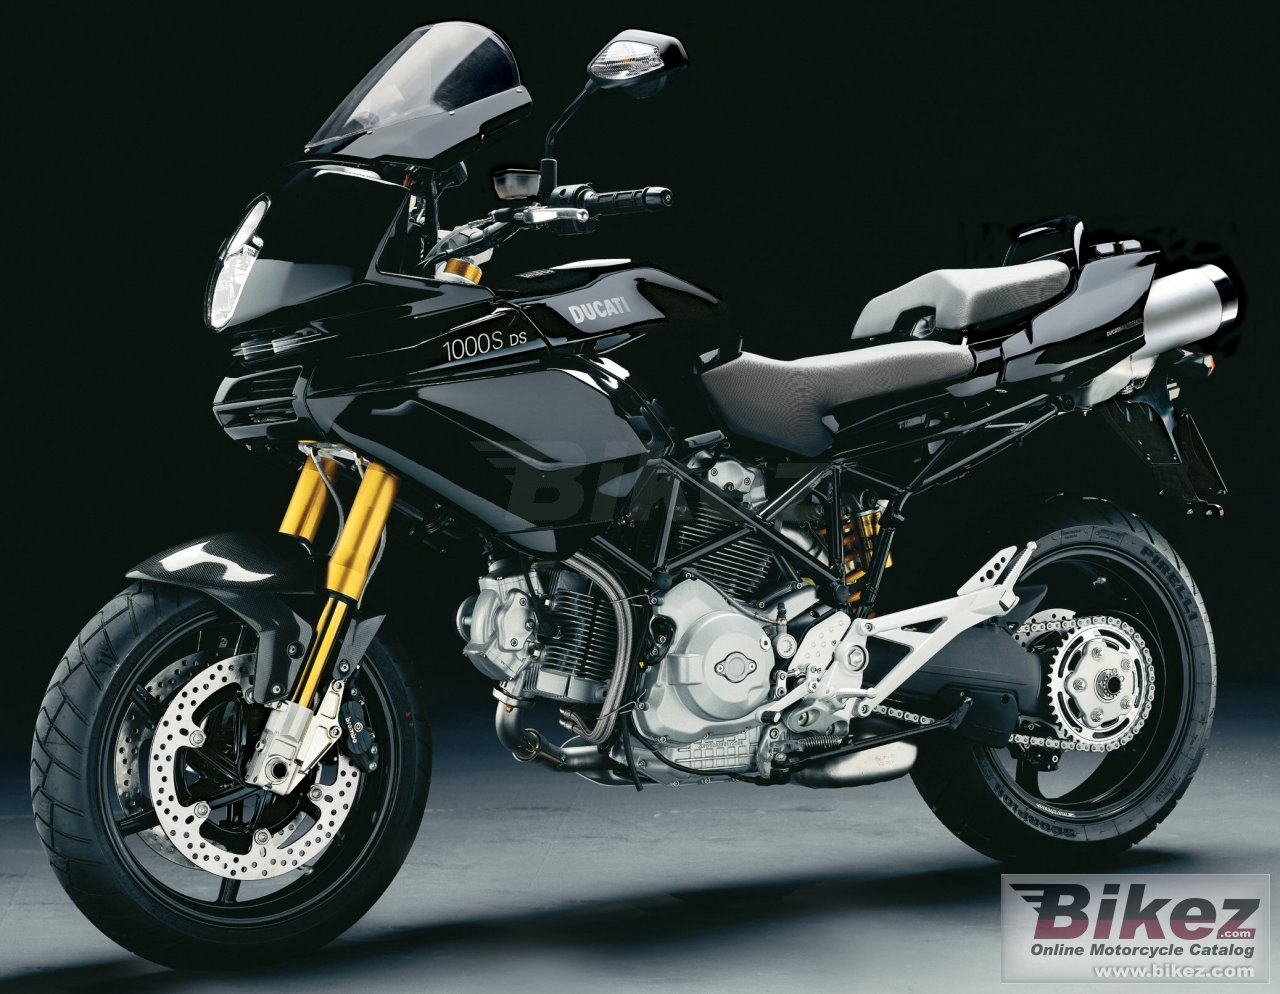 Big Ducati multistrada 1000s ds picture and wallpaper from Bikez.com